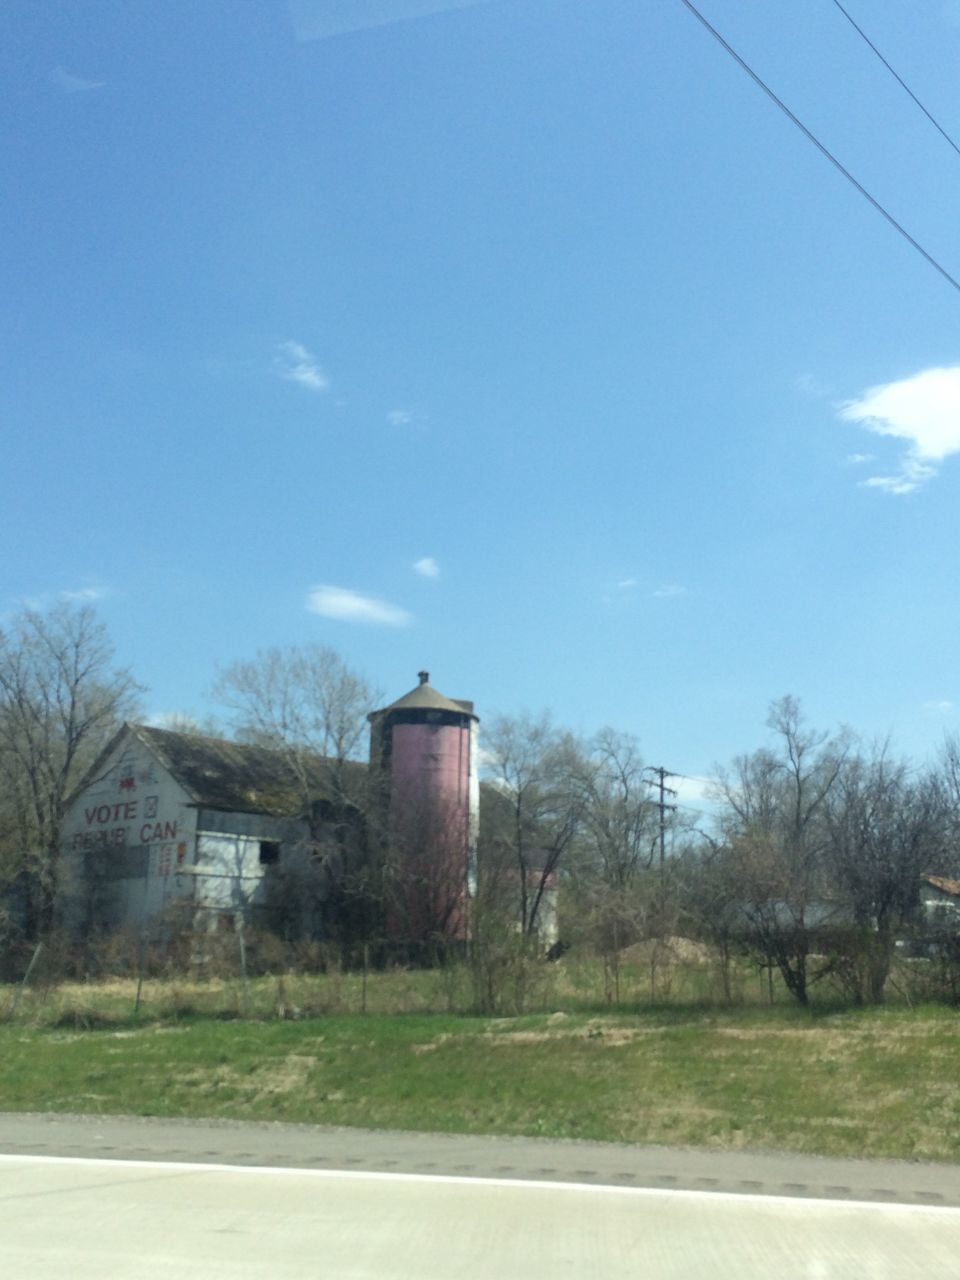 built structure, architecture, sky, building exterior, day, no people, tree, outdoors, road, nature, water tower - storage tank